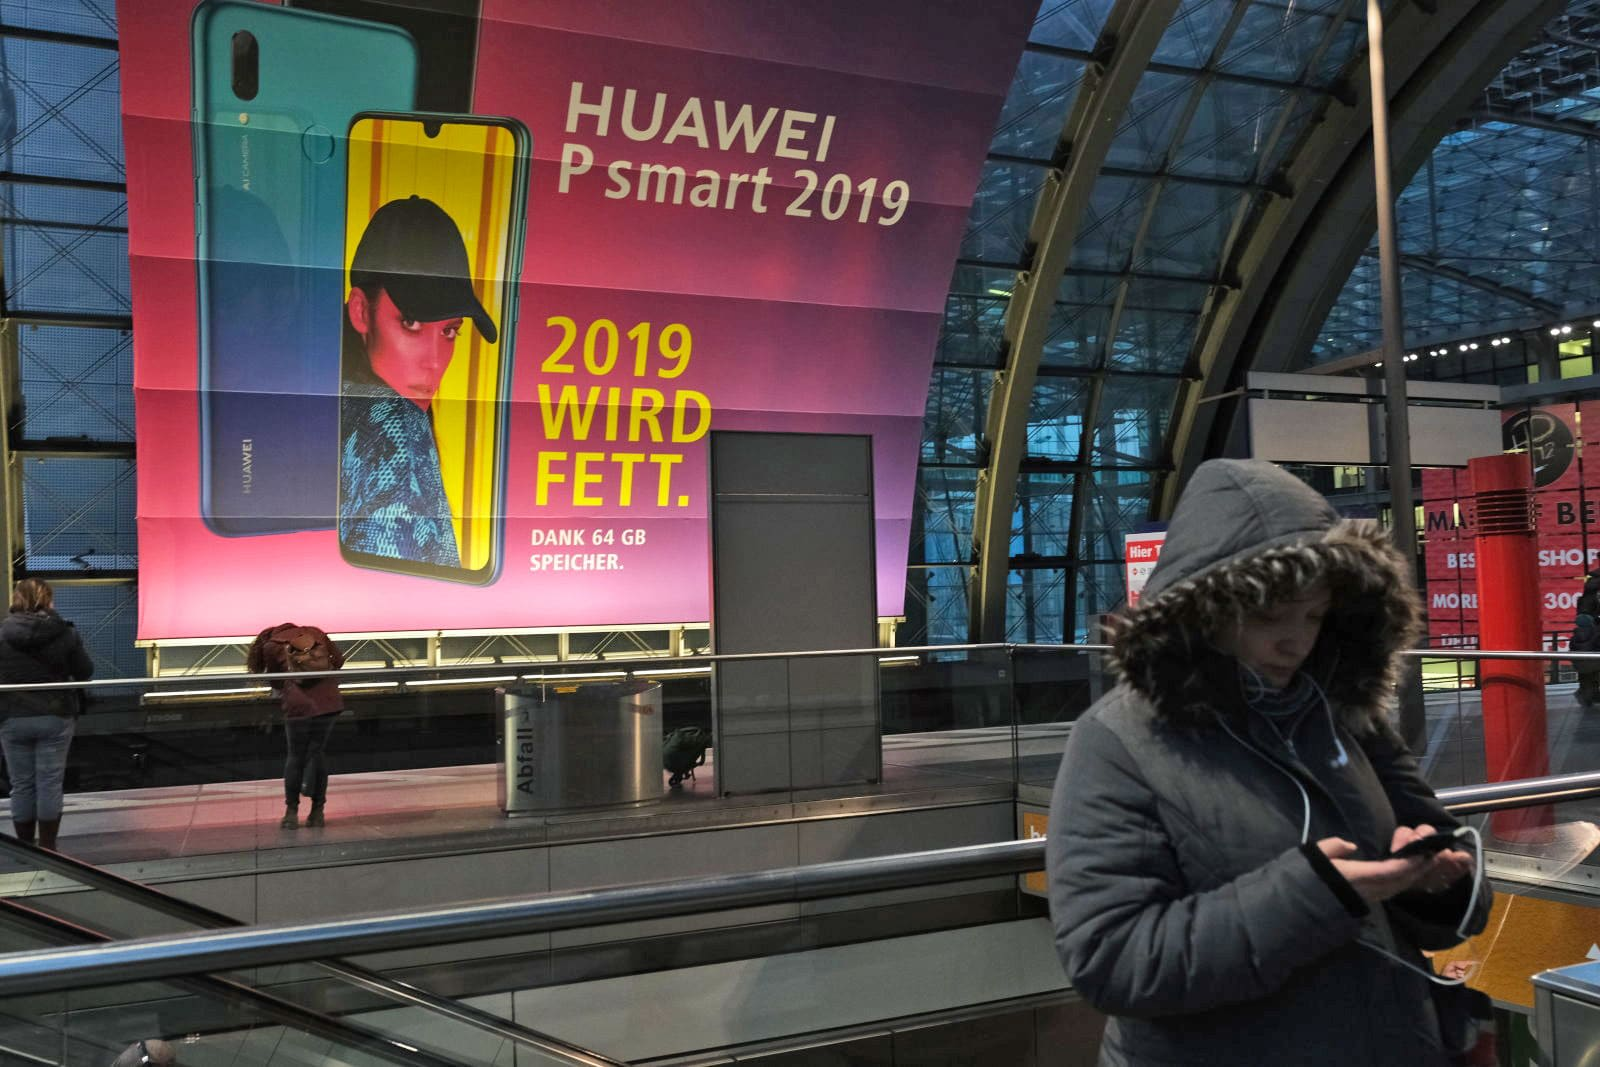 Germany may use Huawei hardware for its 5G networks